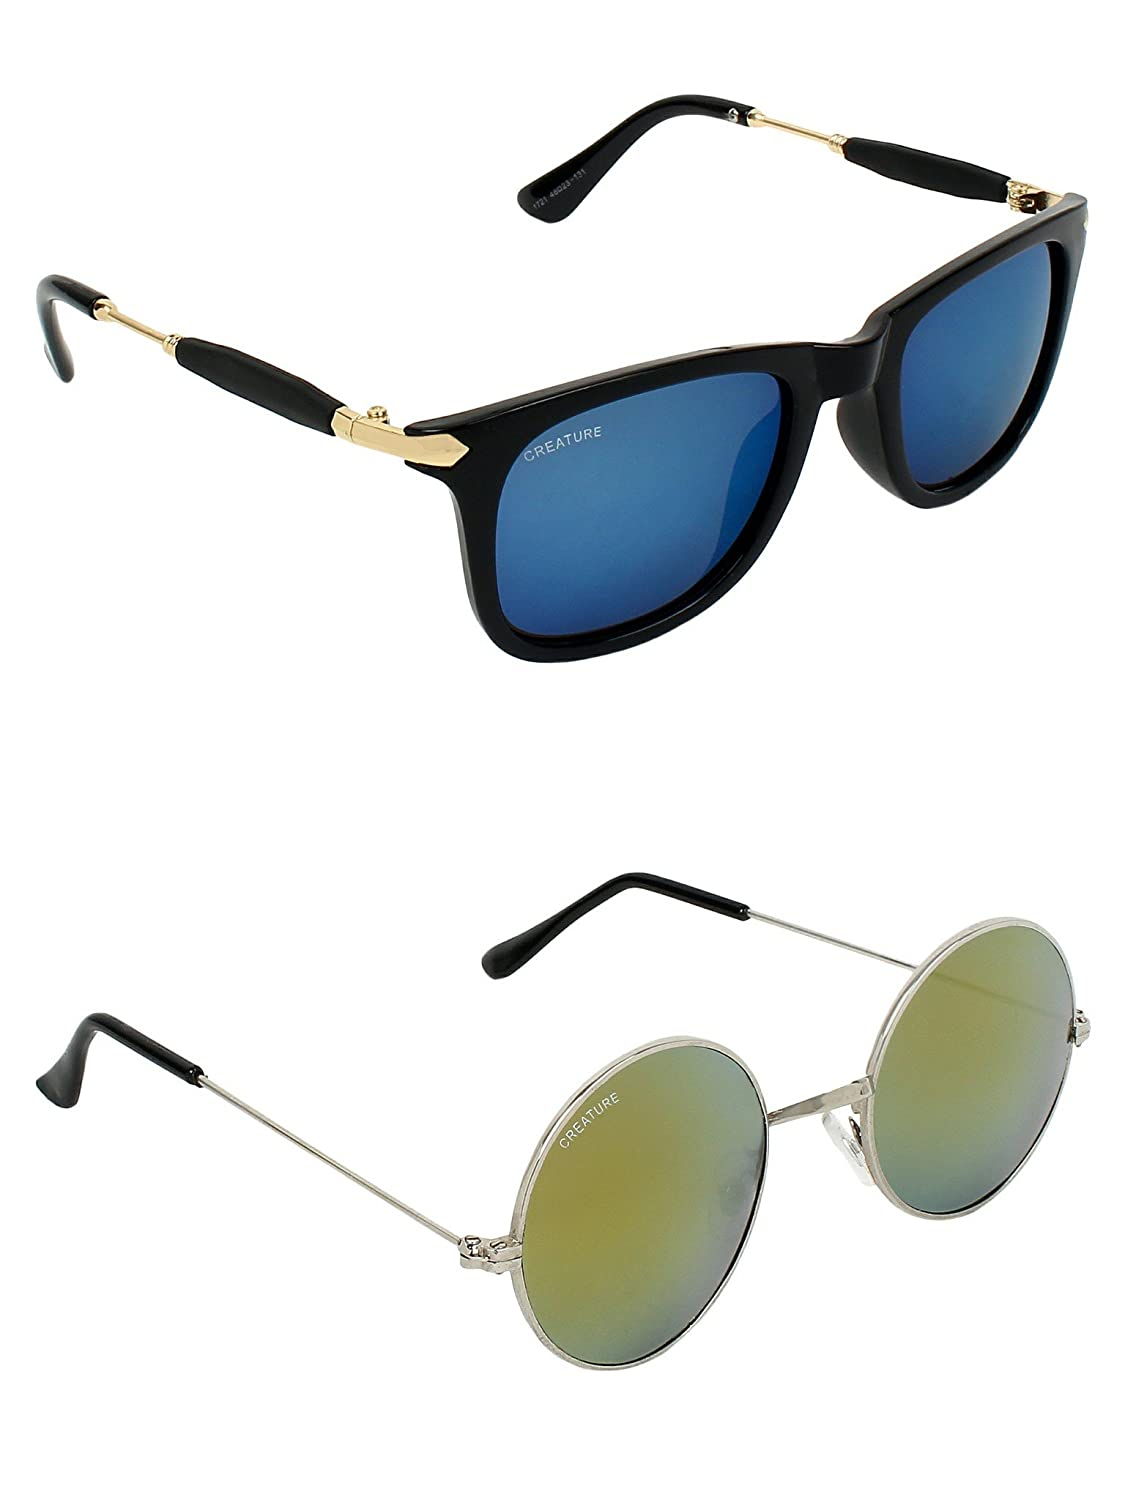 CREATURE | CREATURE Blue & Golden Round Sunglasses Combo with UV Protection (Lens-Blue & Golden|Frame-Black & Silver)